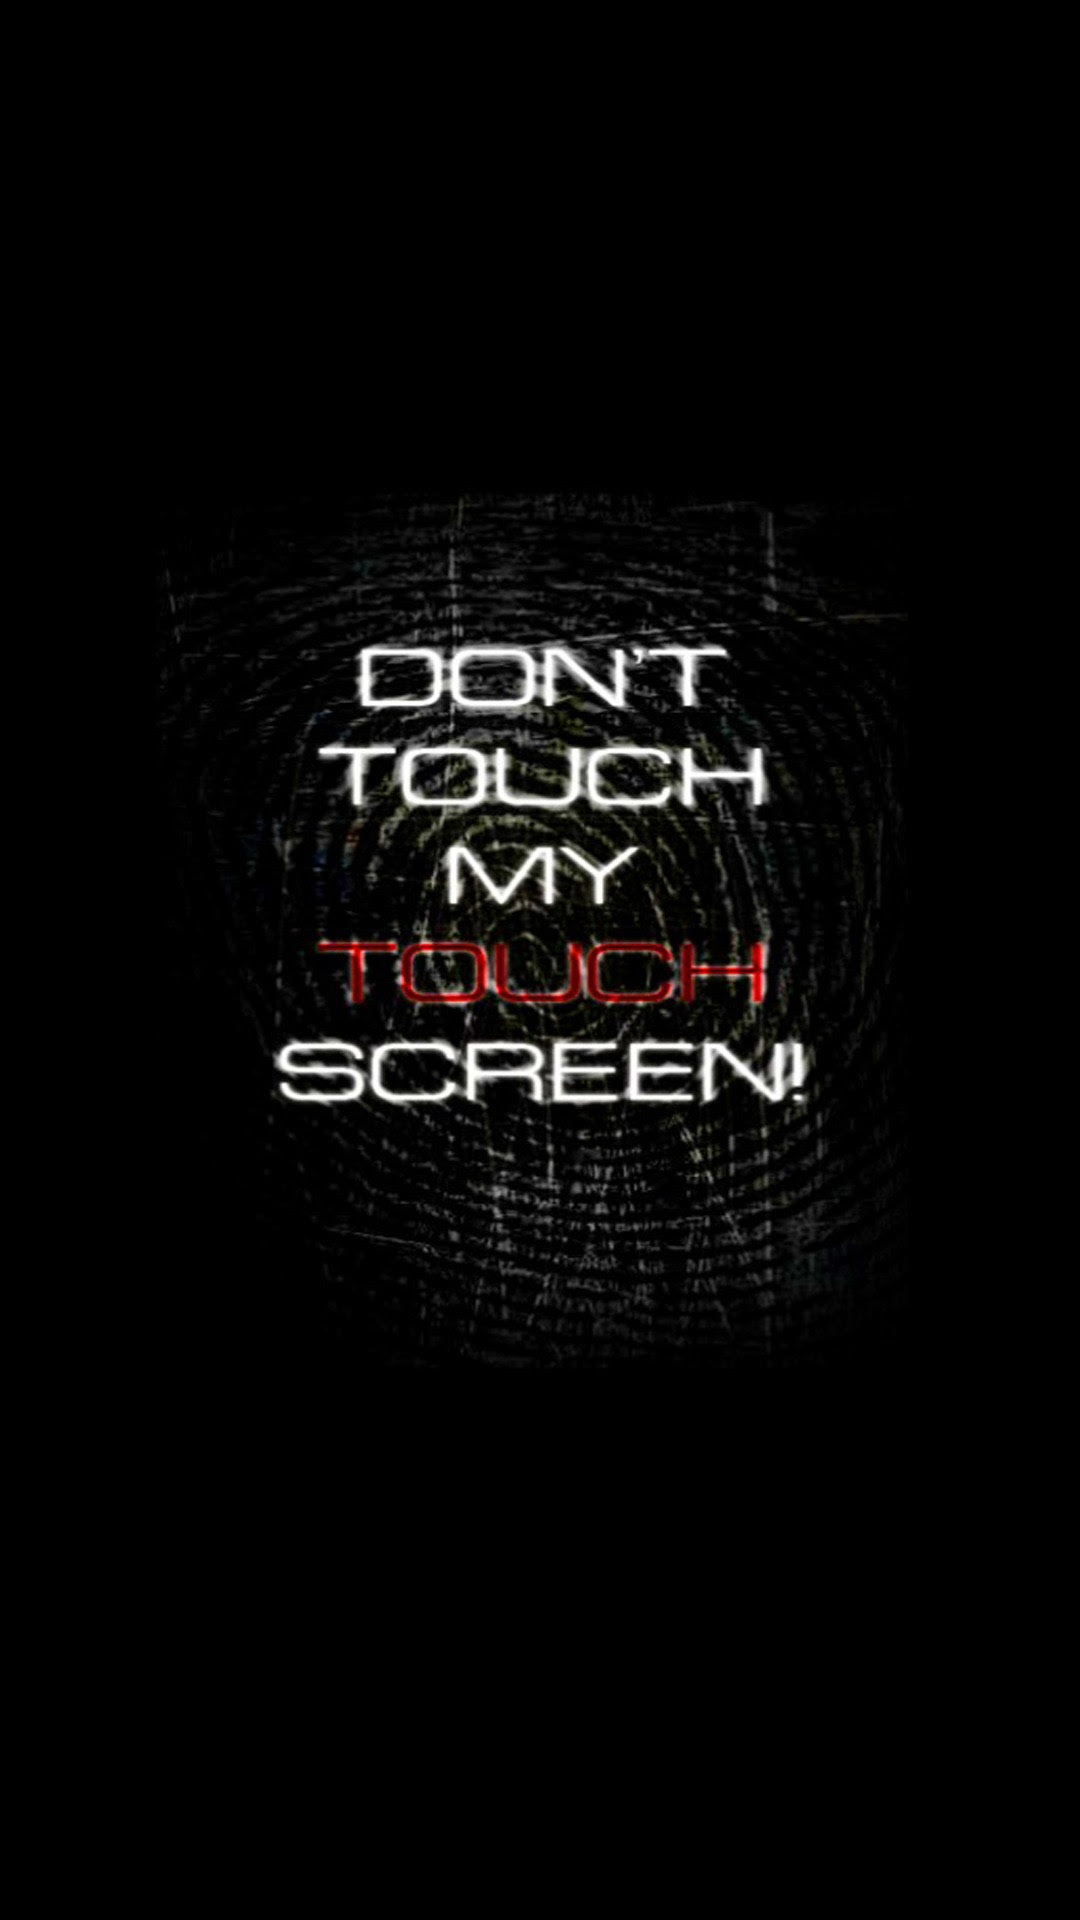 Android Download Dont Touch My Phone Wallpaper Hd Wallpaperandro